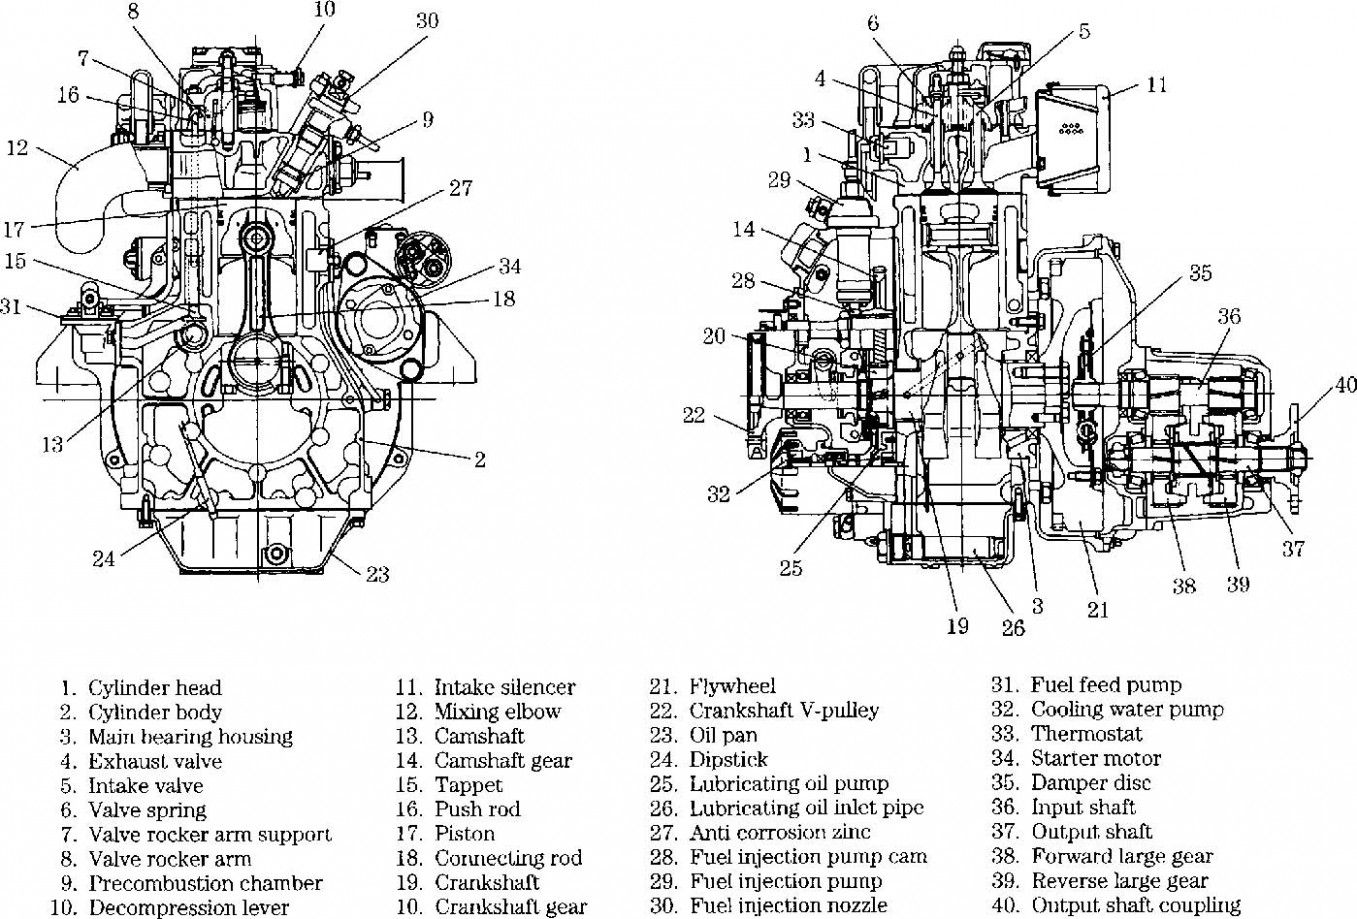 Internal Combustion Engine Block Diagram In